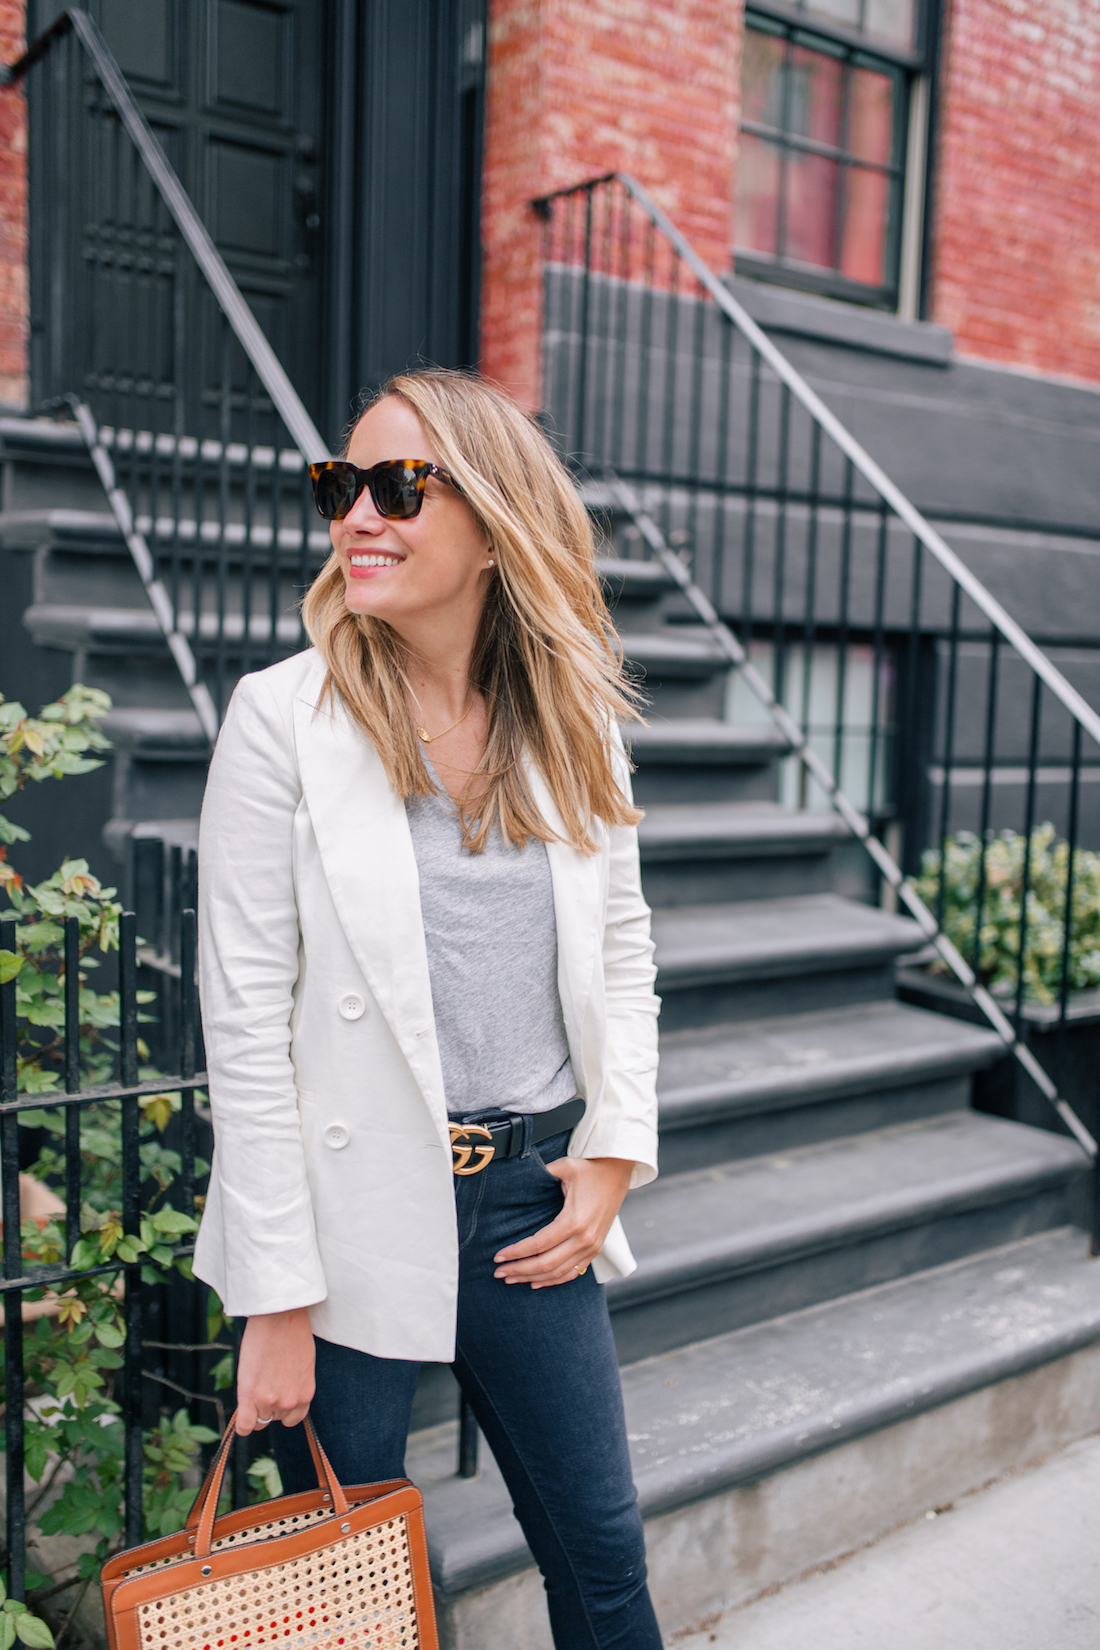 Outfit Details: White Blazer For Spring // Madewell Tee // Paige Jeans // Gucci Belt // Palmgrens Bag // Celine Sunglasses // Estee Lalonde x Daisy Jewellery Necklace